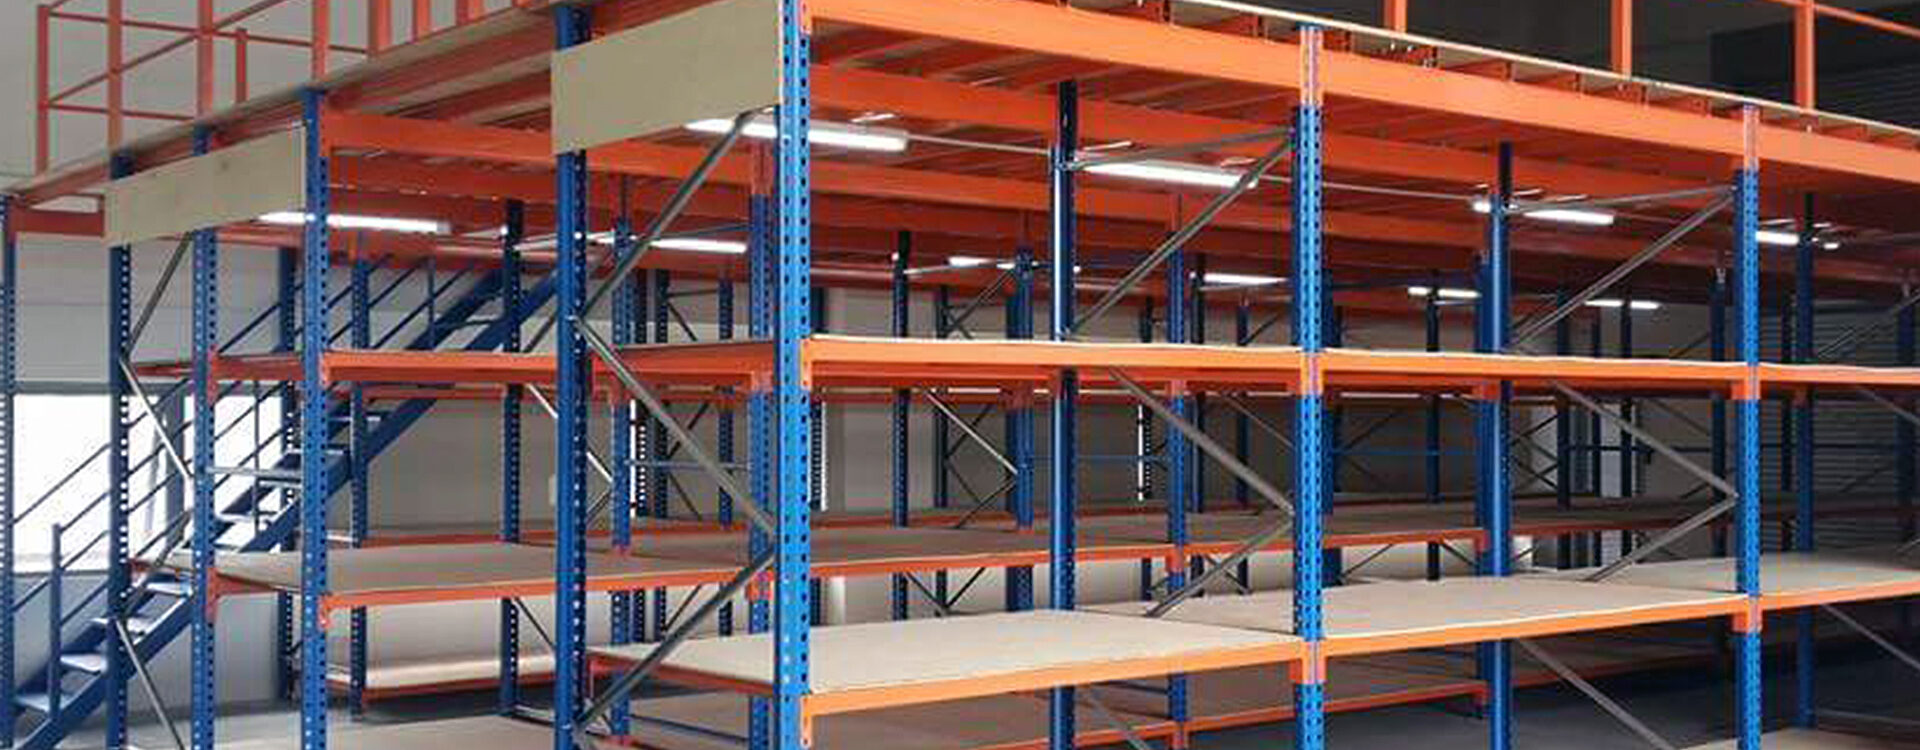 Racking System & Storage Solution Supplier in Malaysia